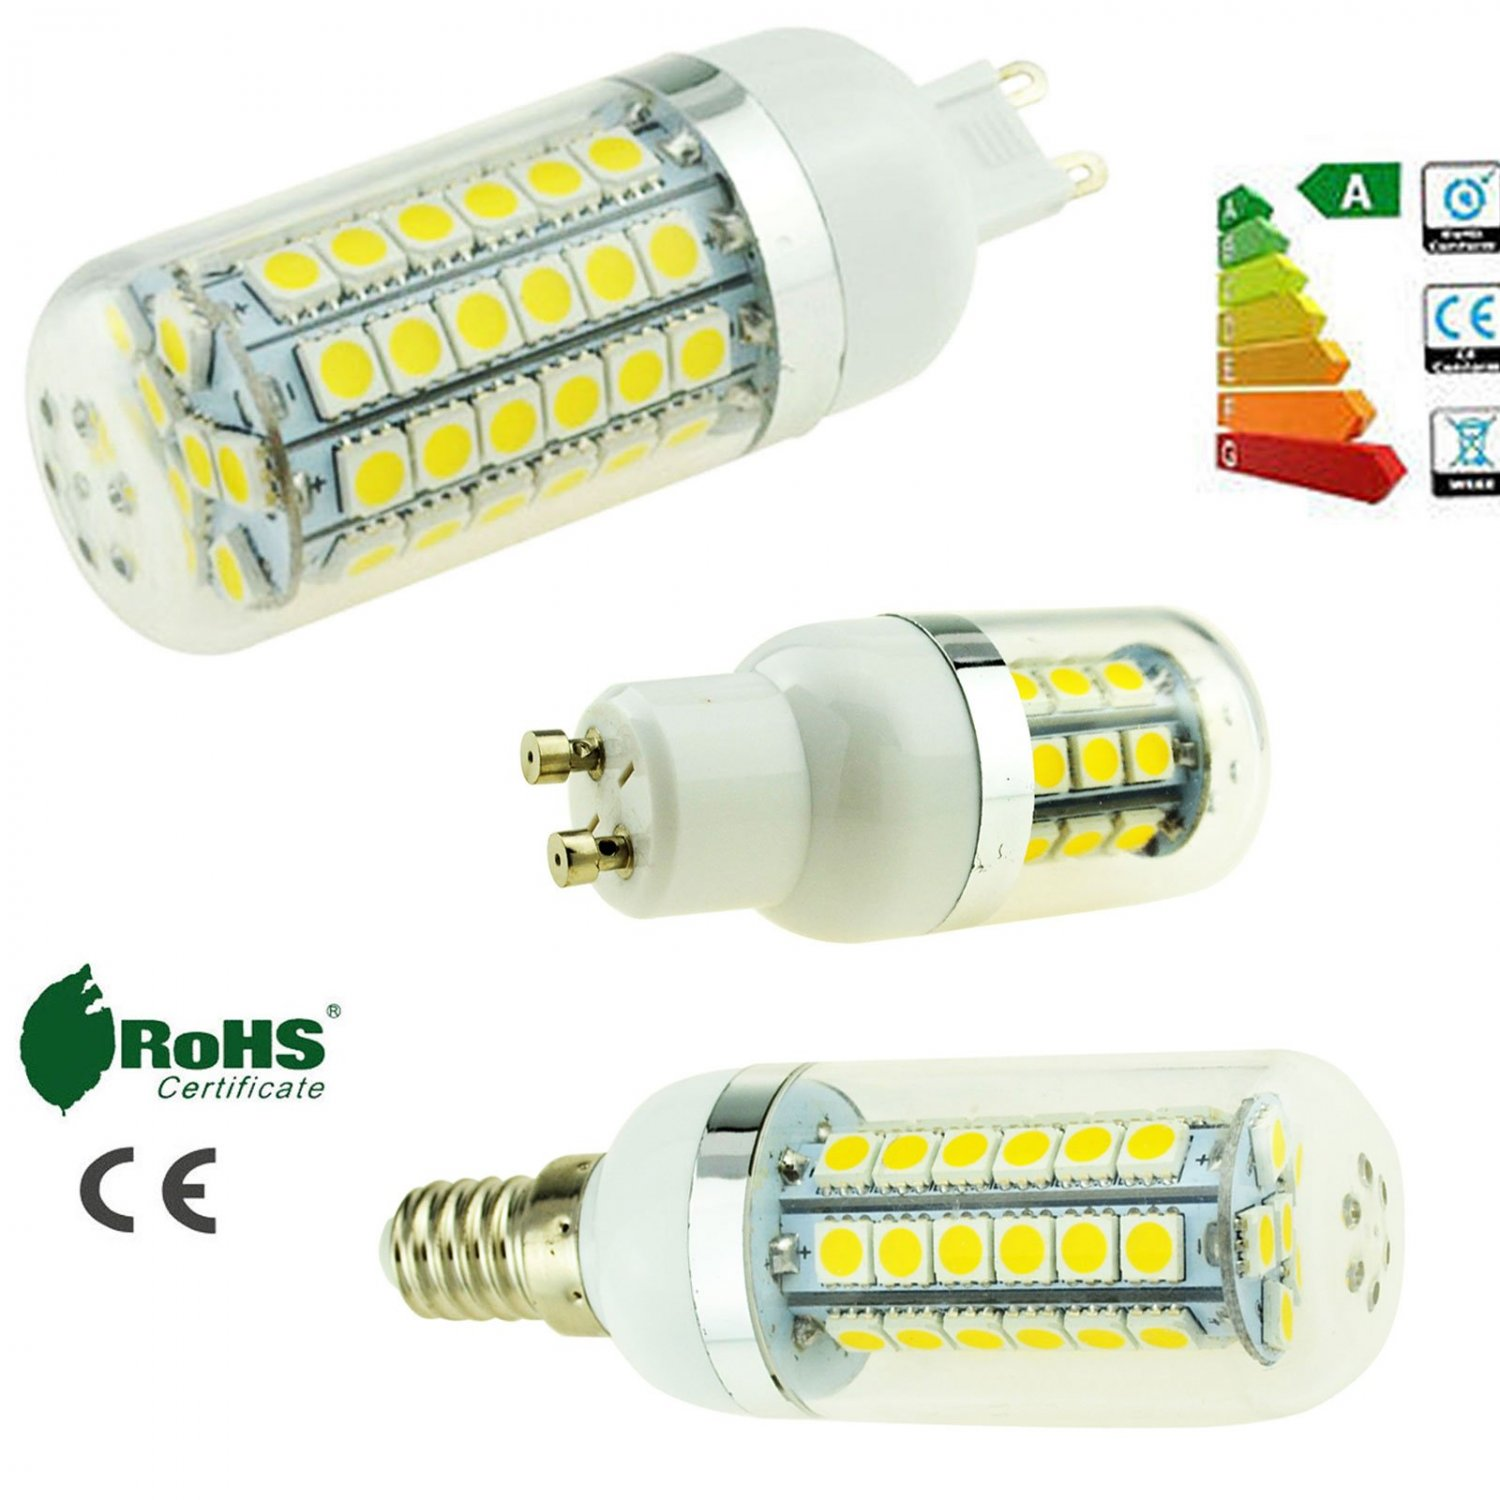 5W 9W 13W 5050 SMD LED Corn Bulb E26 E27 E12 E14 G9 B22 GU10 Bright Light Lamp